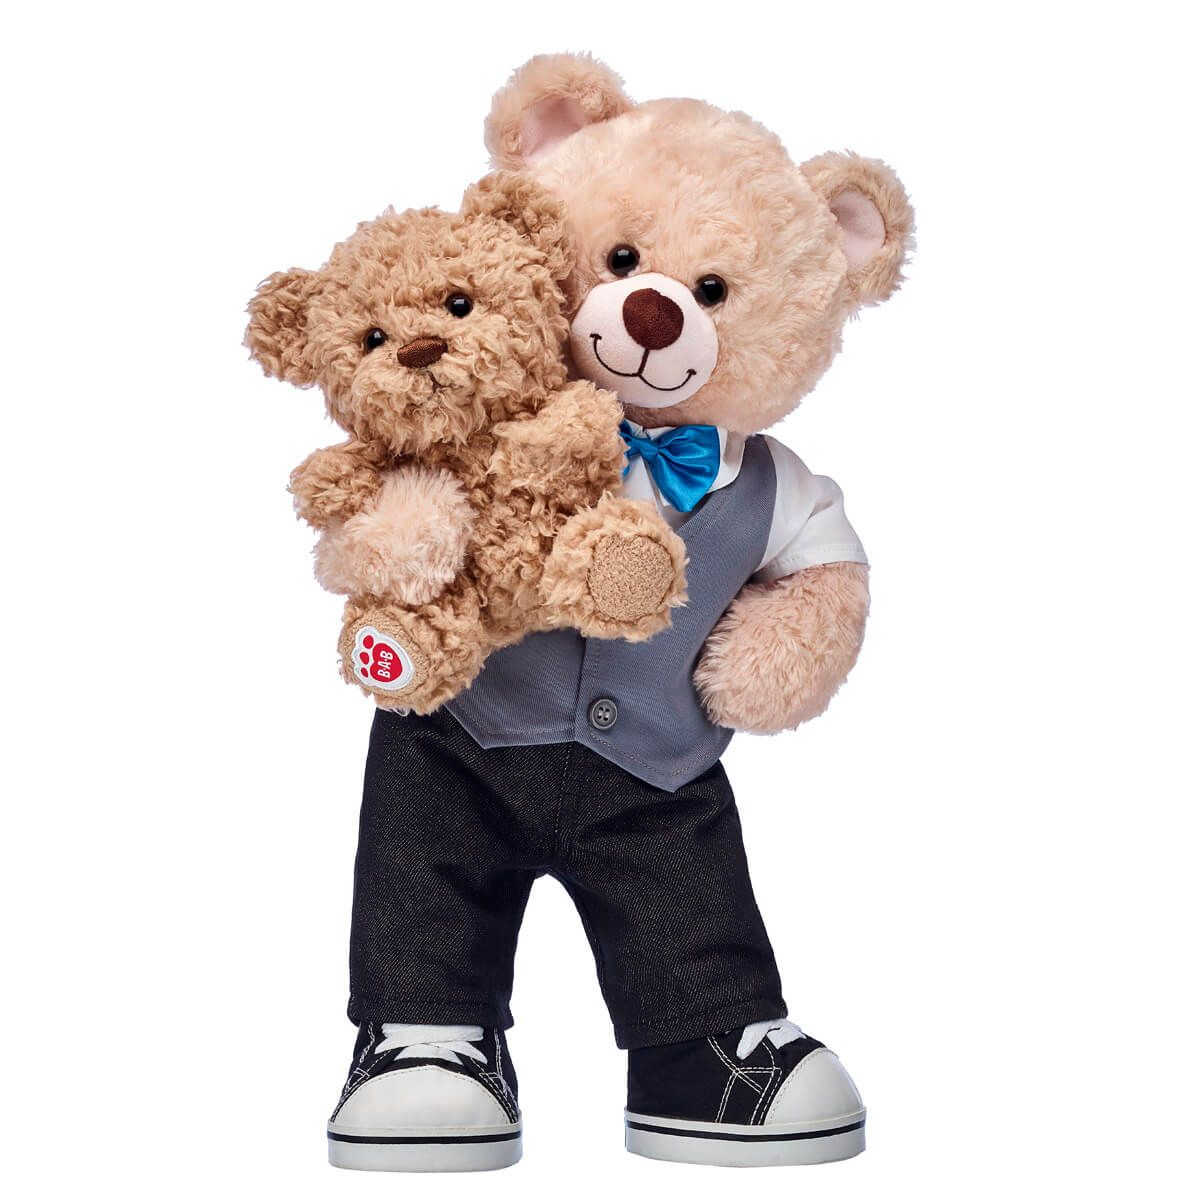 Online Exclusive Take Your Teddy To Work Gift Set In 2020 Cute Stuffed Animals Teddy Teddy Bear Gifts [ 1200 x 1200 Pixel ]